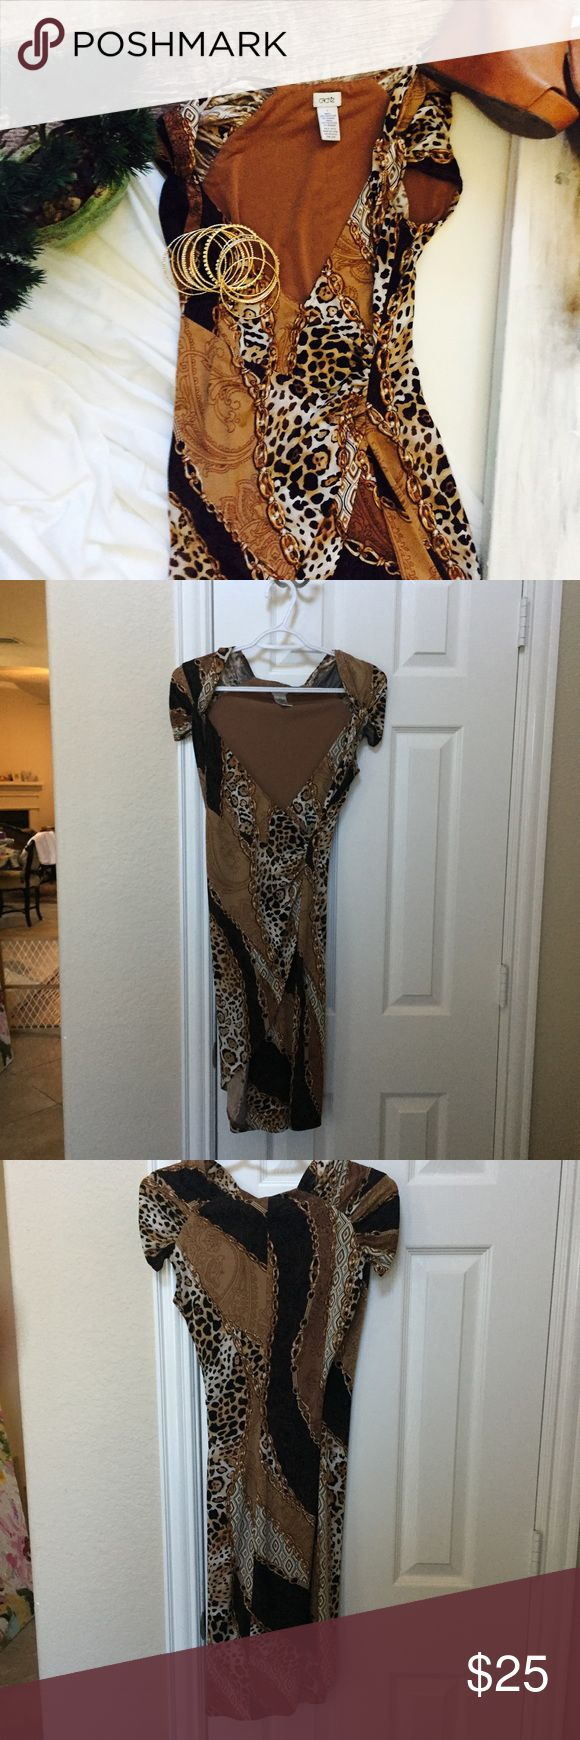 Cache Animal Print Cap Sleeve Dress Worn once, this beautiful dress is perfect for any event. It's made with Spandex and is cinched on the sides. Cap sleeve low cut neck. Falls above the knee. Open to offers Cache Dresses Midi